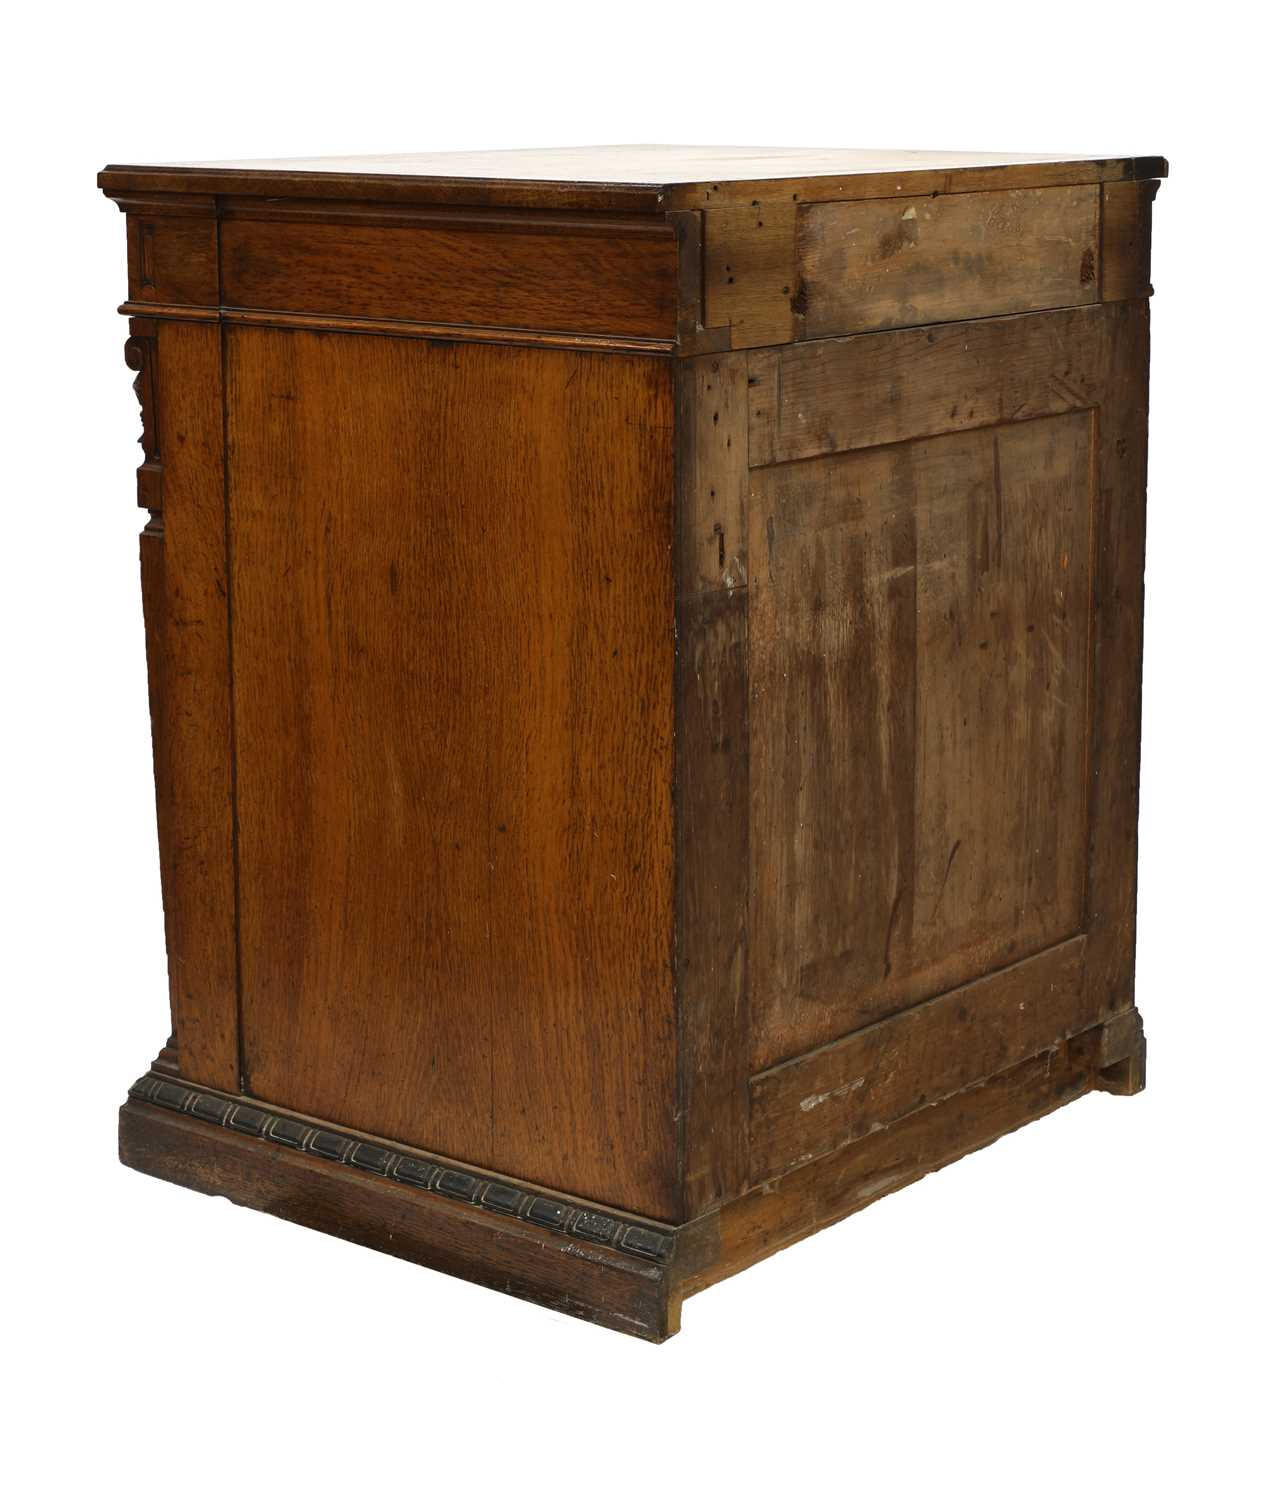 A Victorian oak and ebonised dining room pedestal, - Image 4 of 6